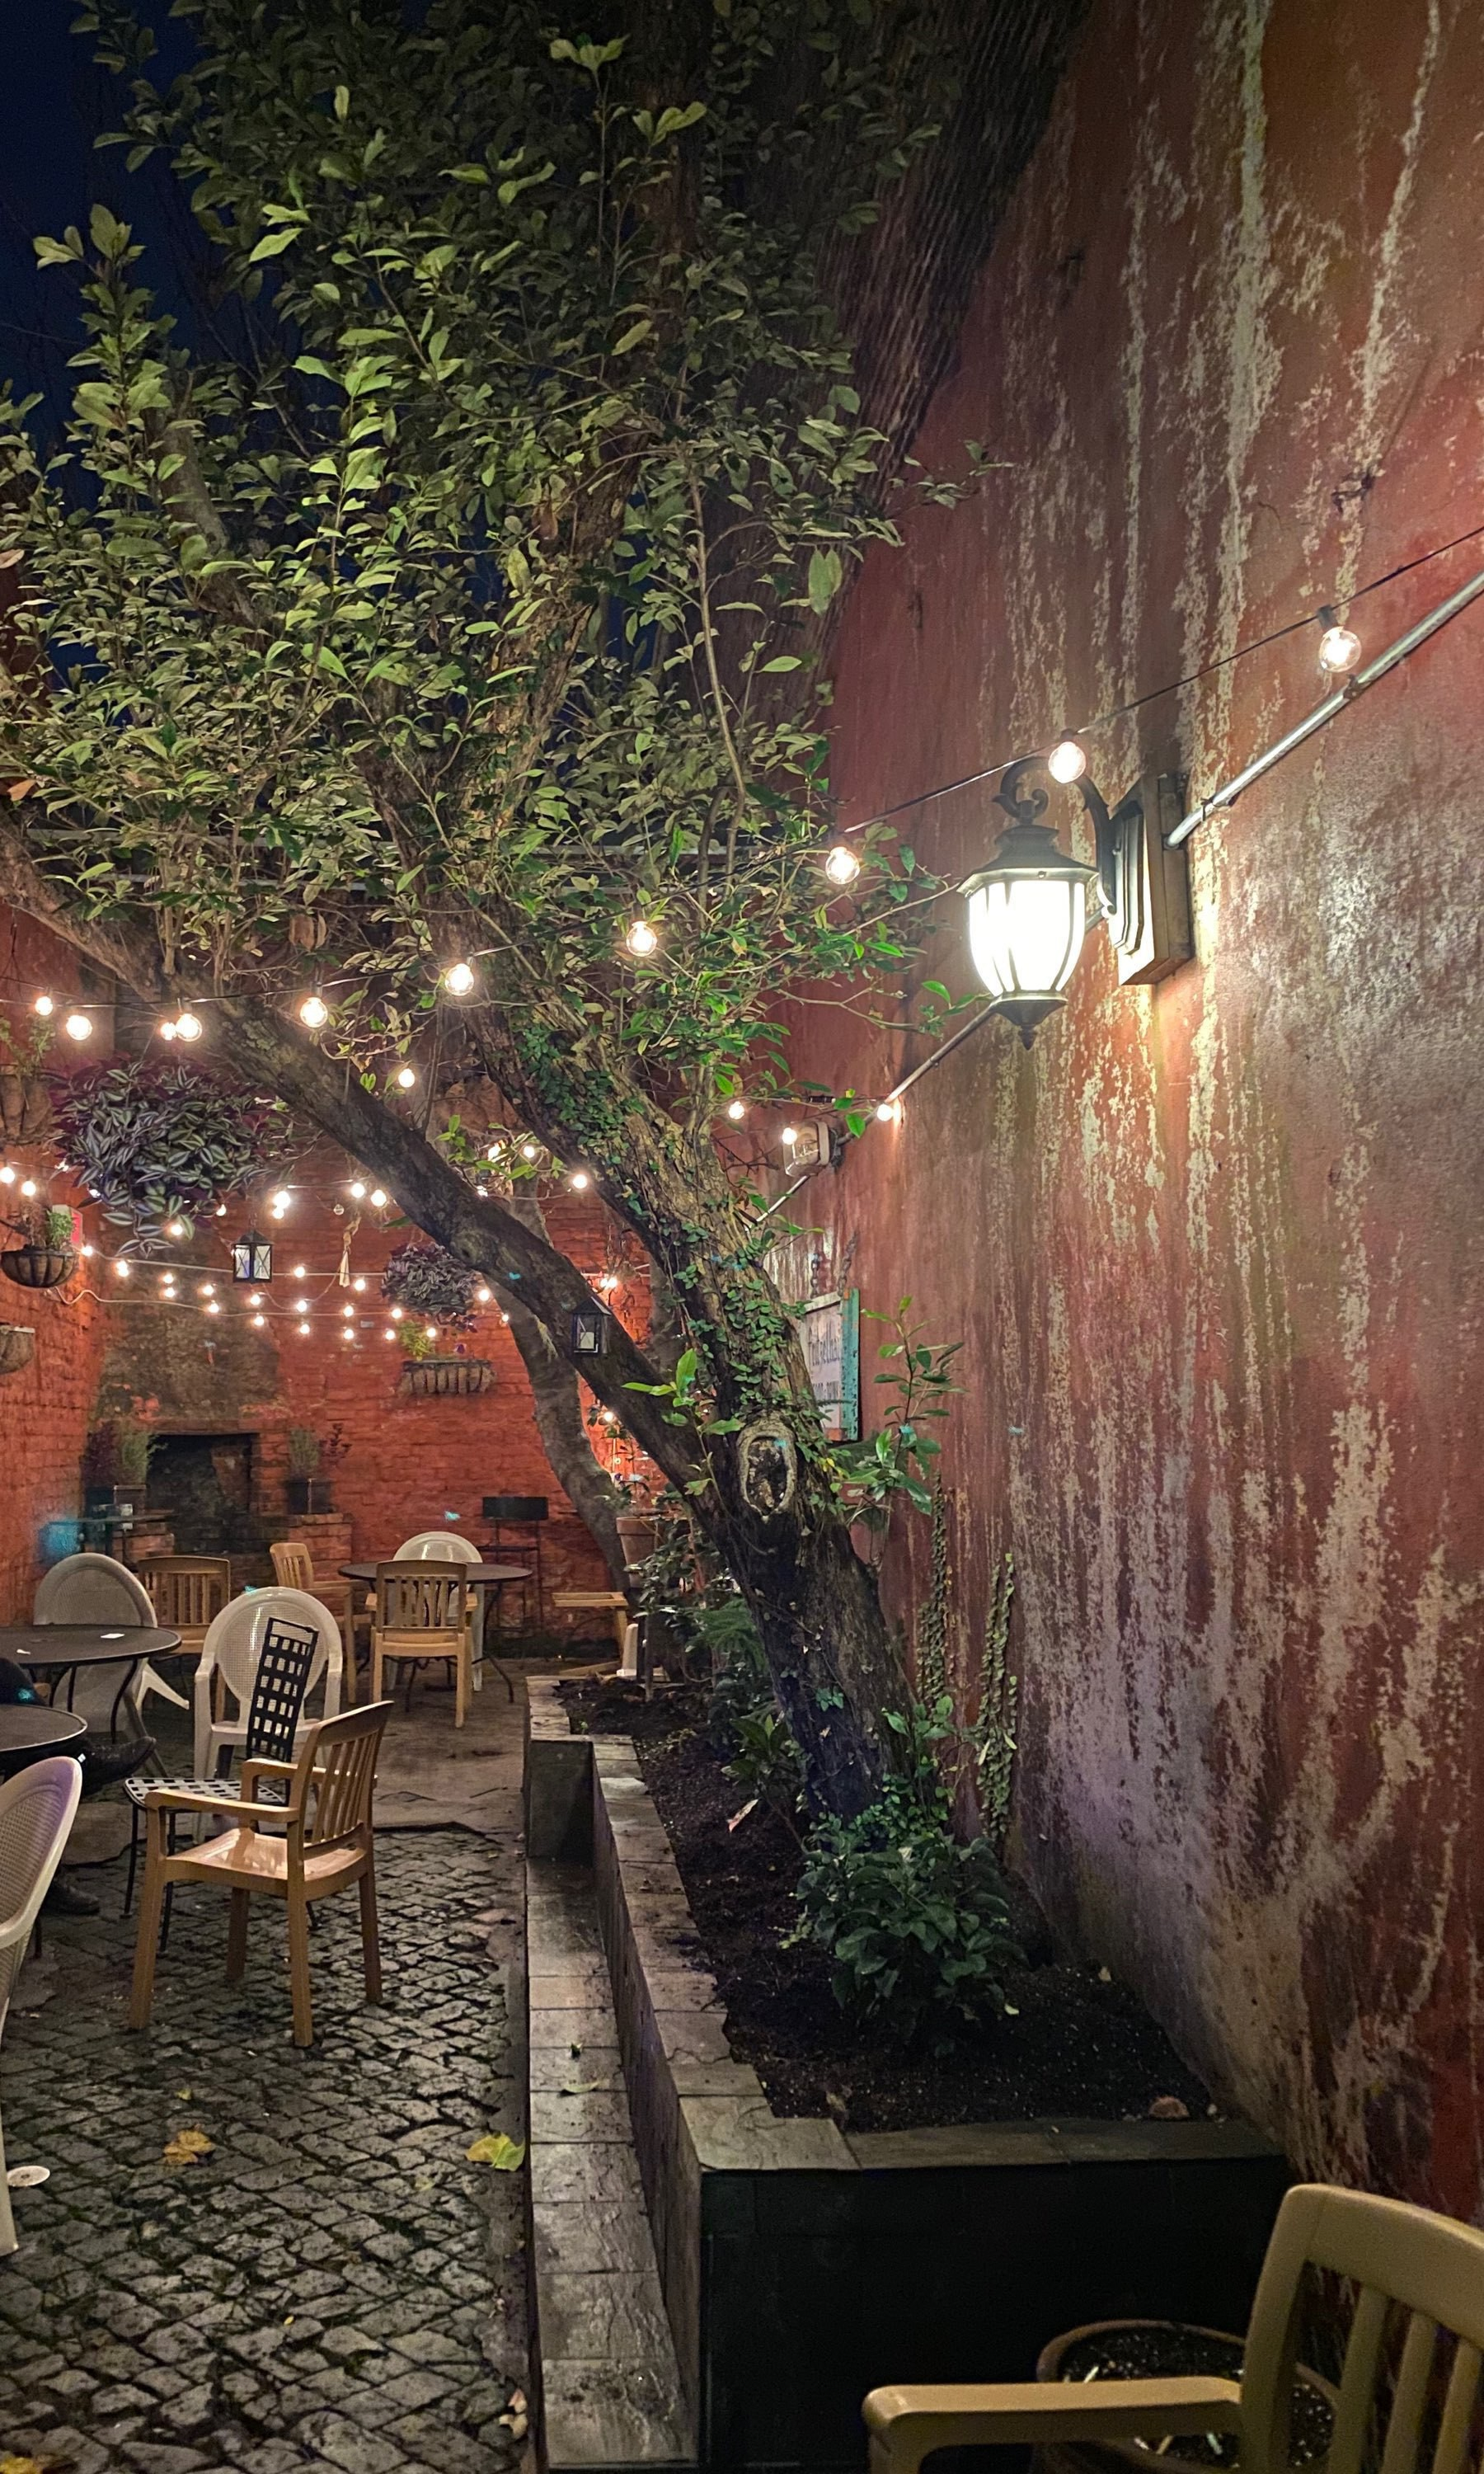 A courtyard with stone floors, brick walls, a tree, and chairs at night under strung up lights